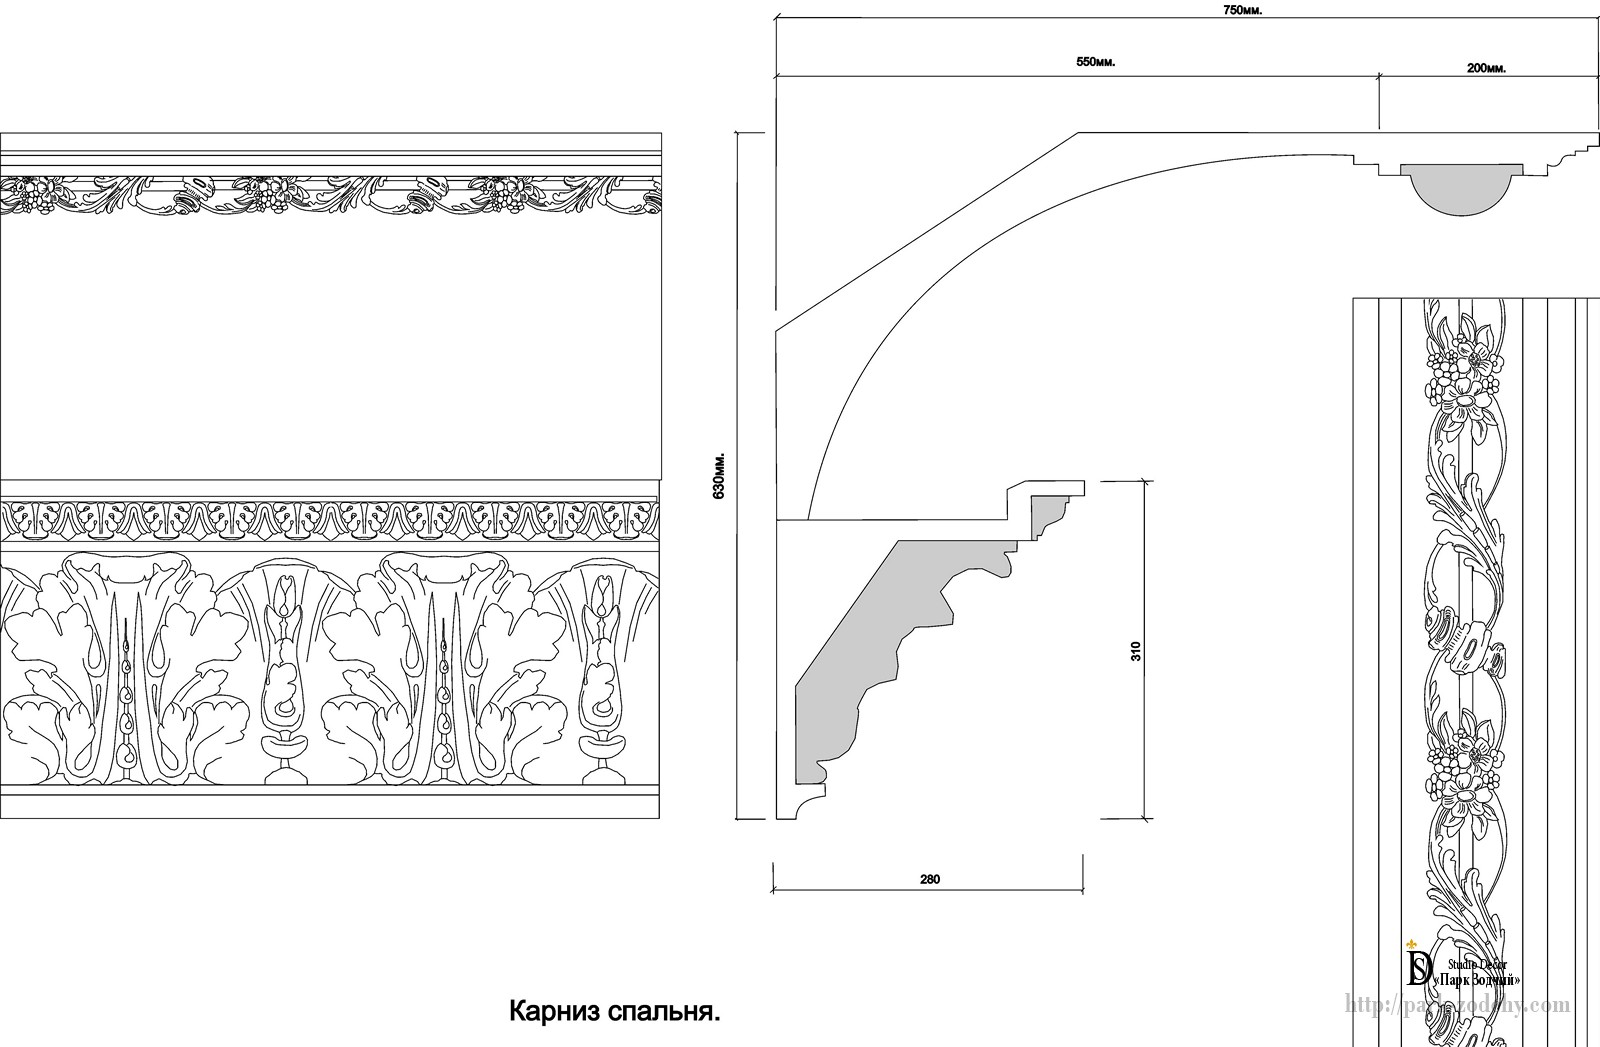 the cornice of plaster moldings